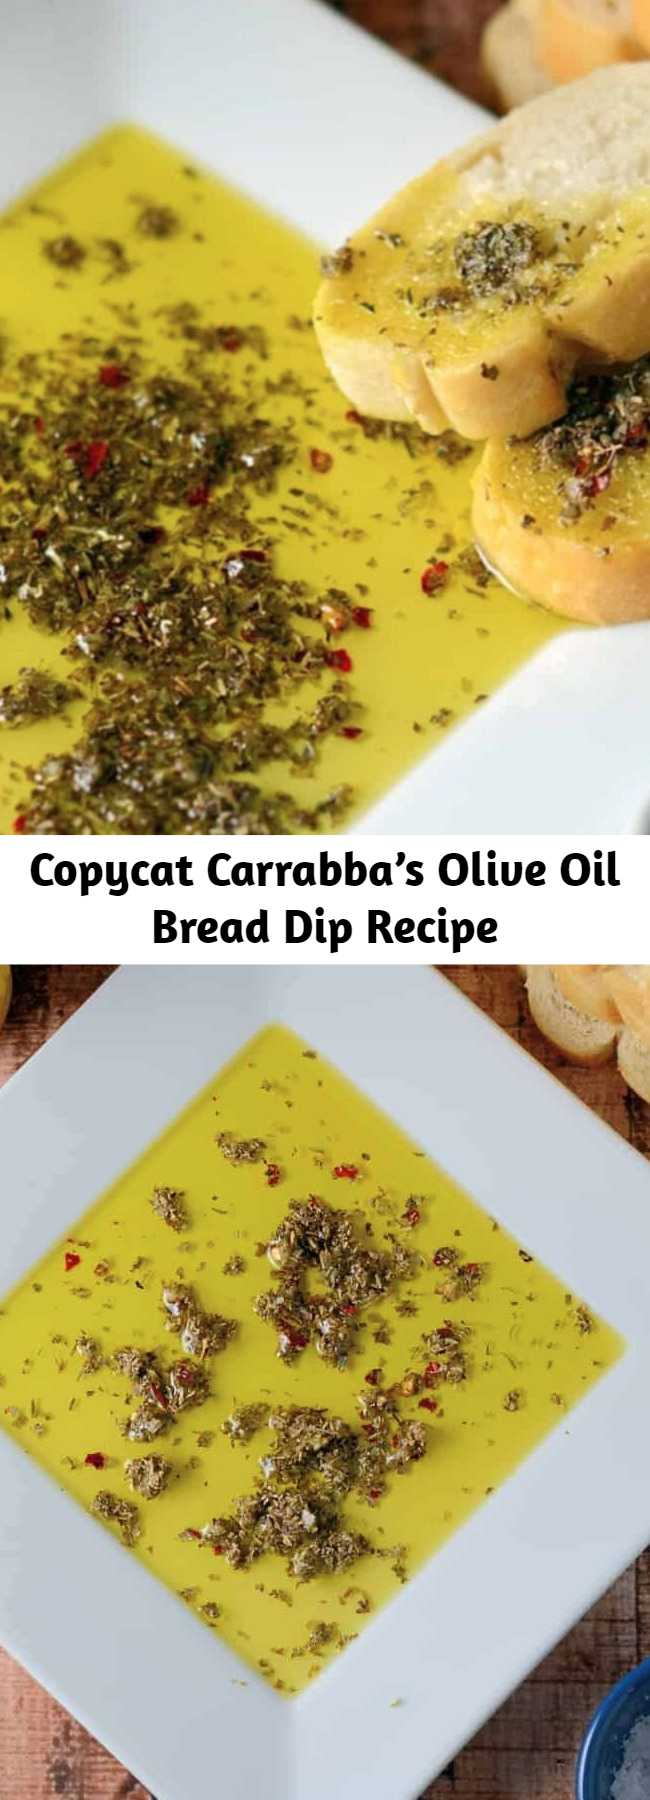 Copycat Carrabba's Olive Oil Bread Dip Recipe - The best bread dip recipe out there! Use as a dipping sauce for cheese, meats, drizzle on salads or mix into pasta sauce. These are the best dipping spices to make ahead and keep it in the pantry!